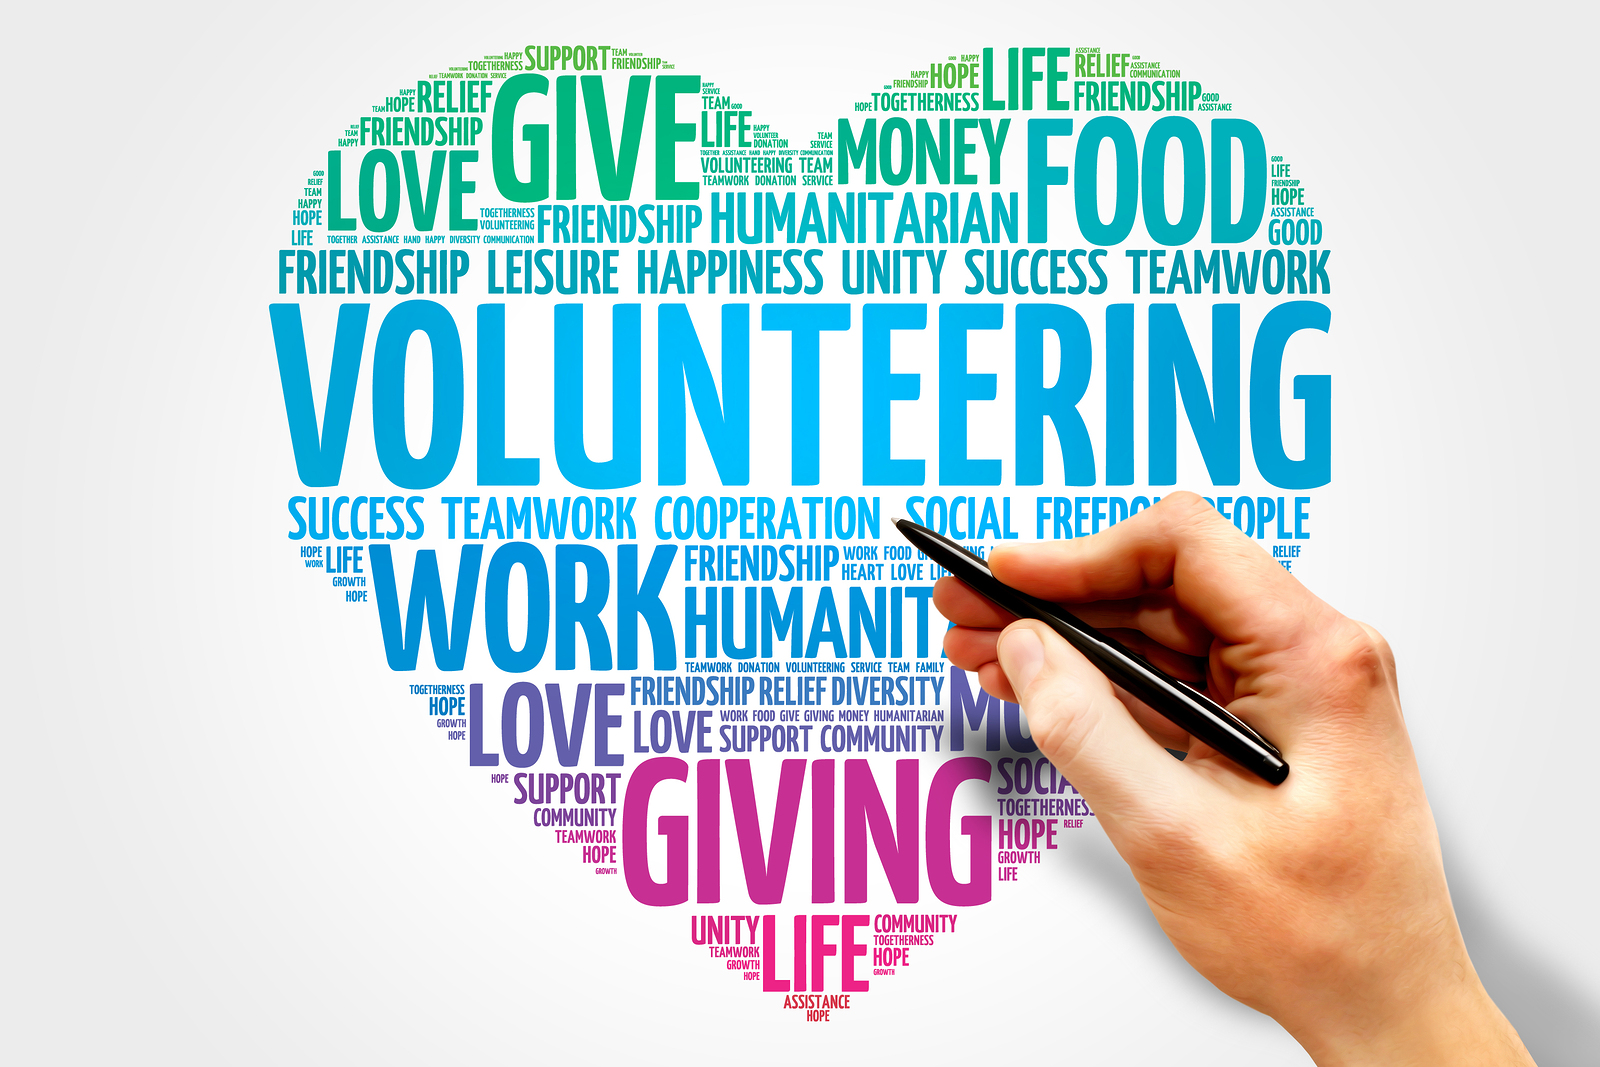 bigstock-Volunteering-114586544